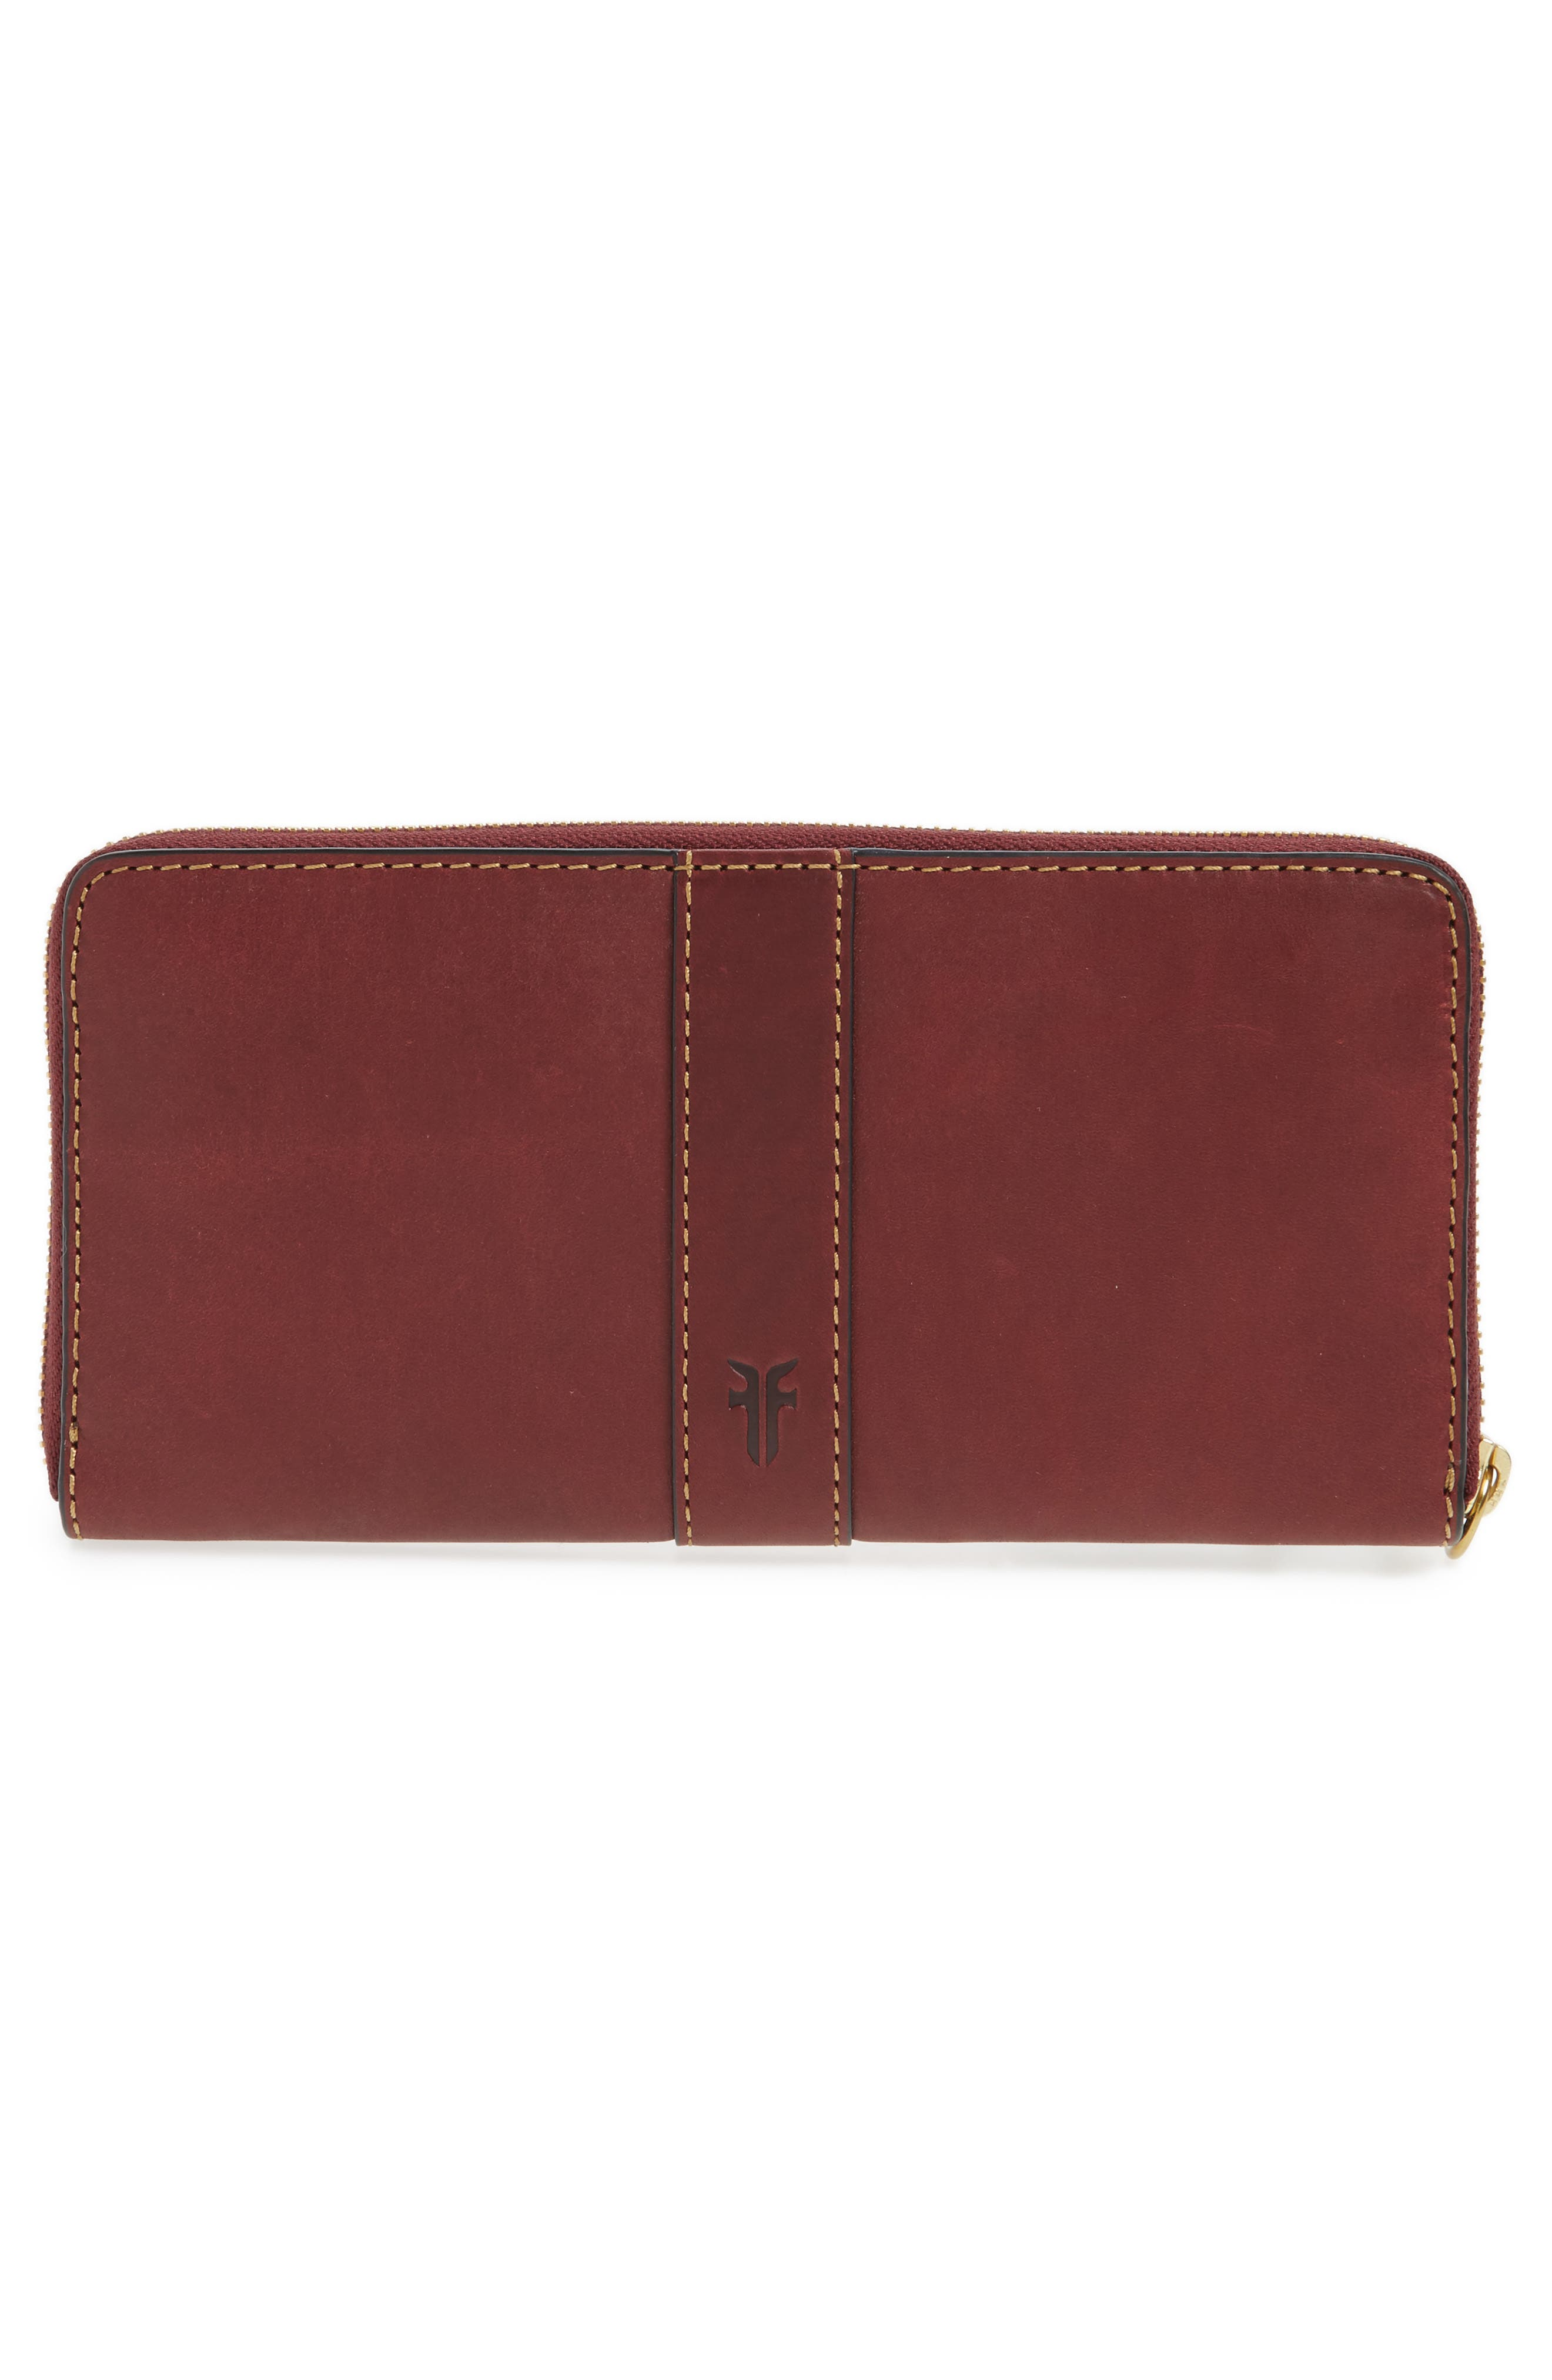 Ilana Harness Leather Zip Wallet,                             Alternate thumbnail 6, color,